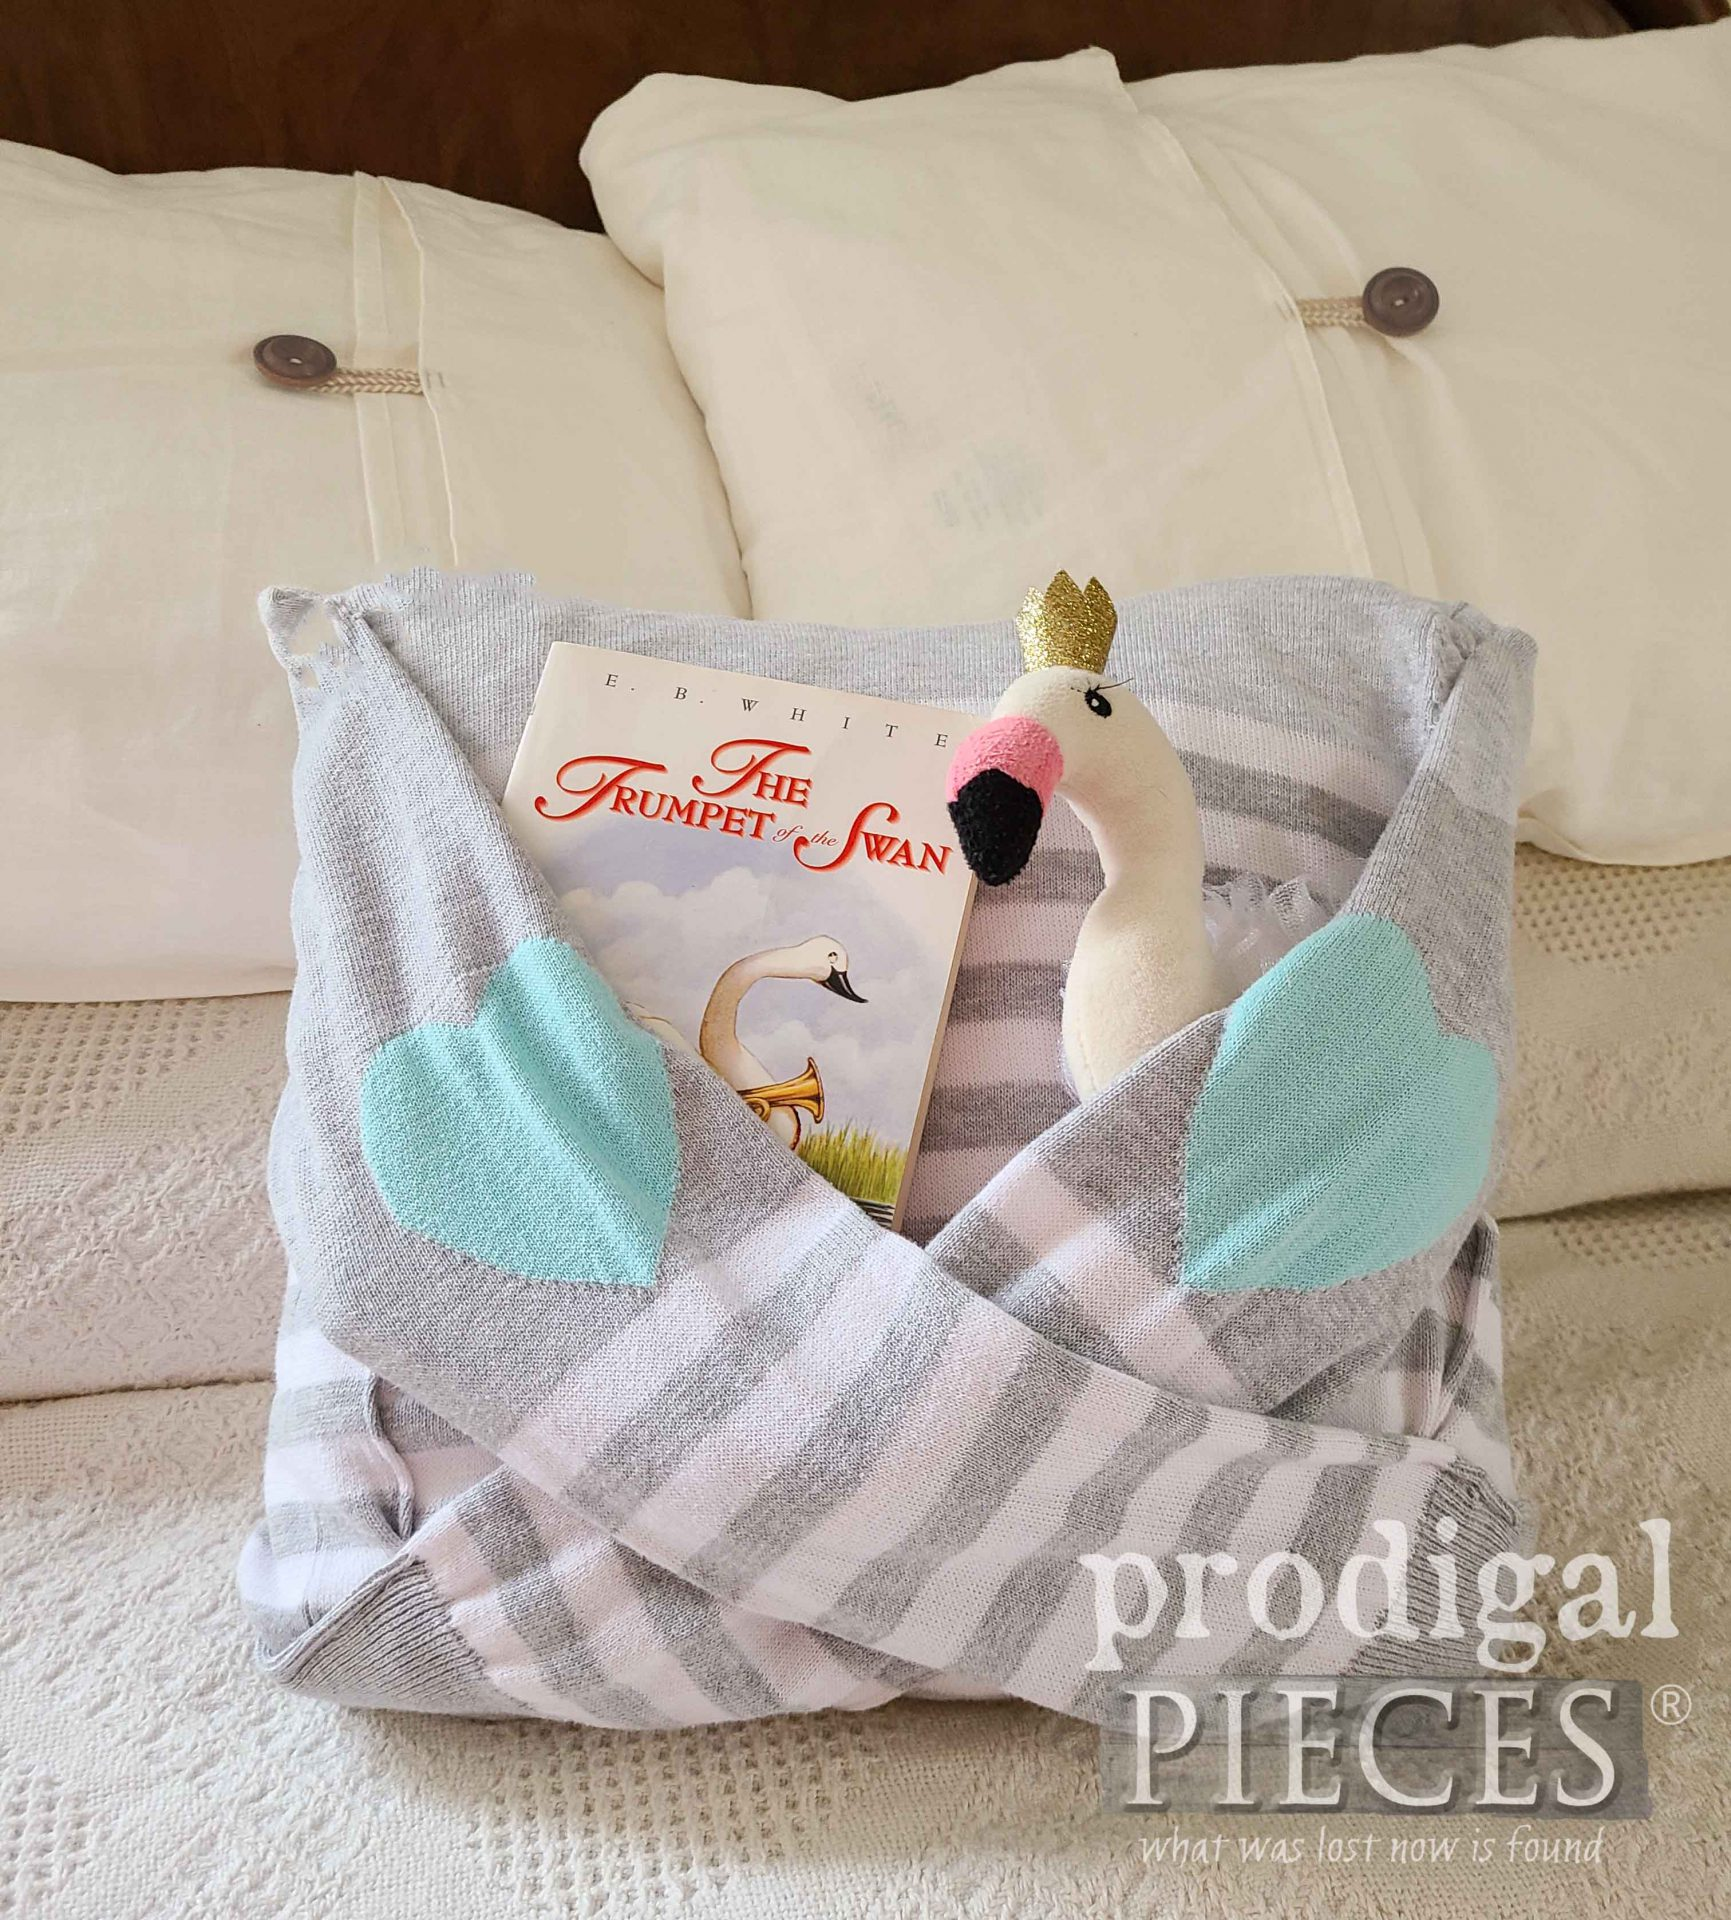 DIY Upcycled Sweater Pocket Pillow by Larissa of Prodigal Pieces | prodigalpieces.com #prodigalpieces #refashion #giftidea #upcycled